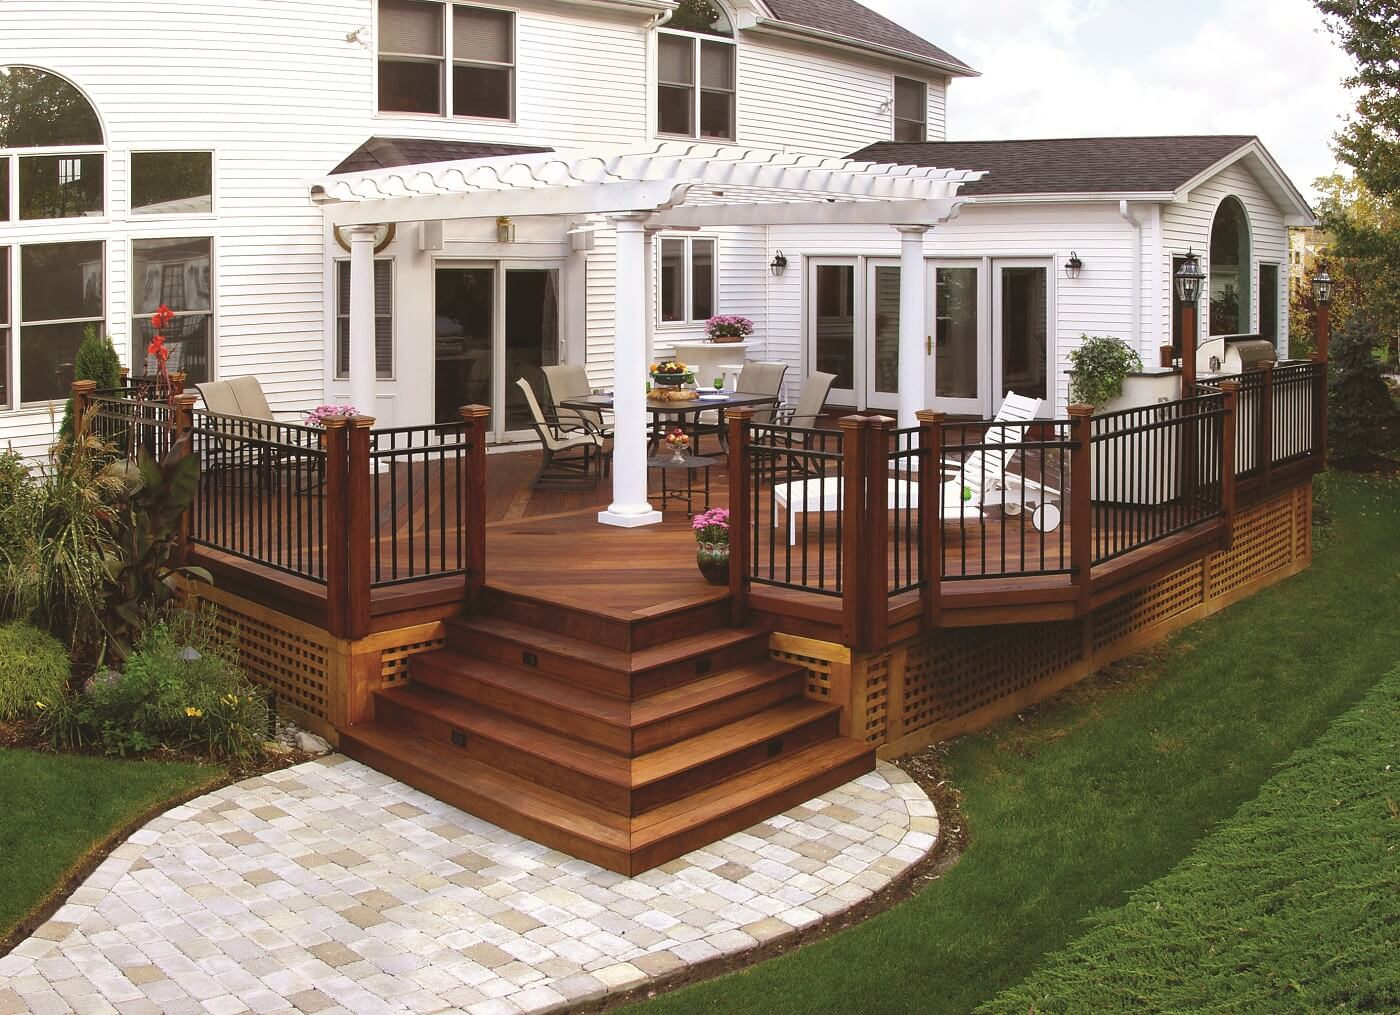 wooden deck with railings